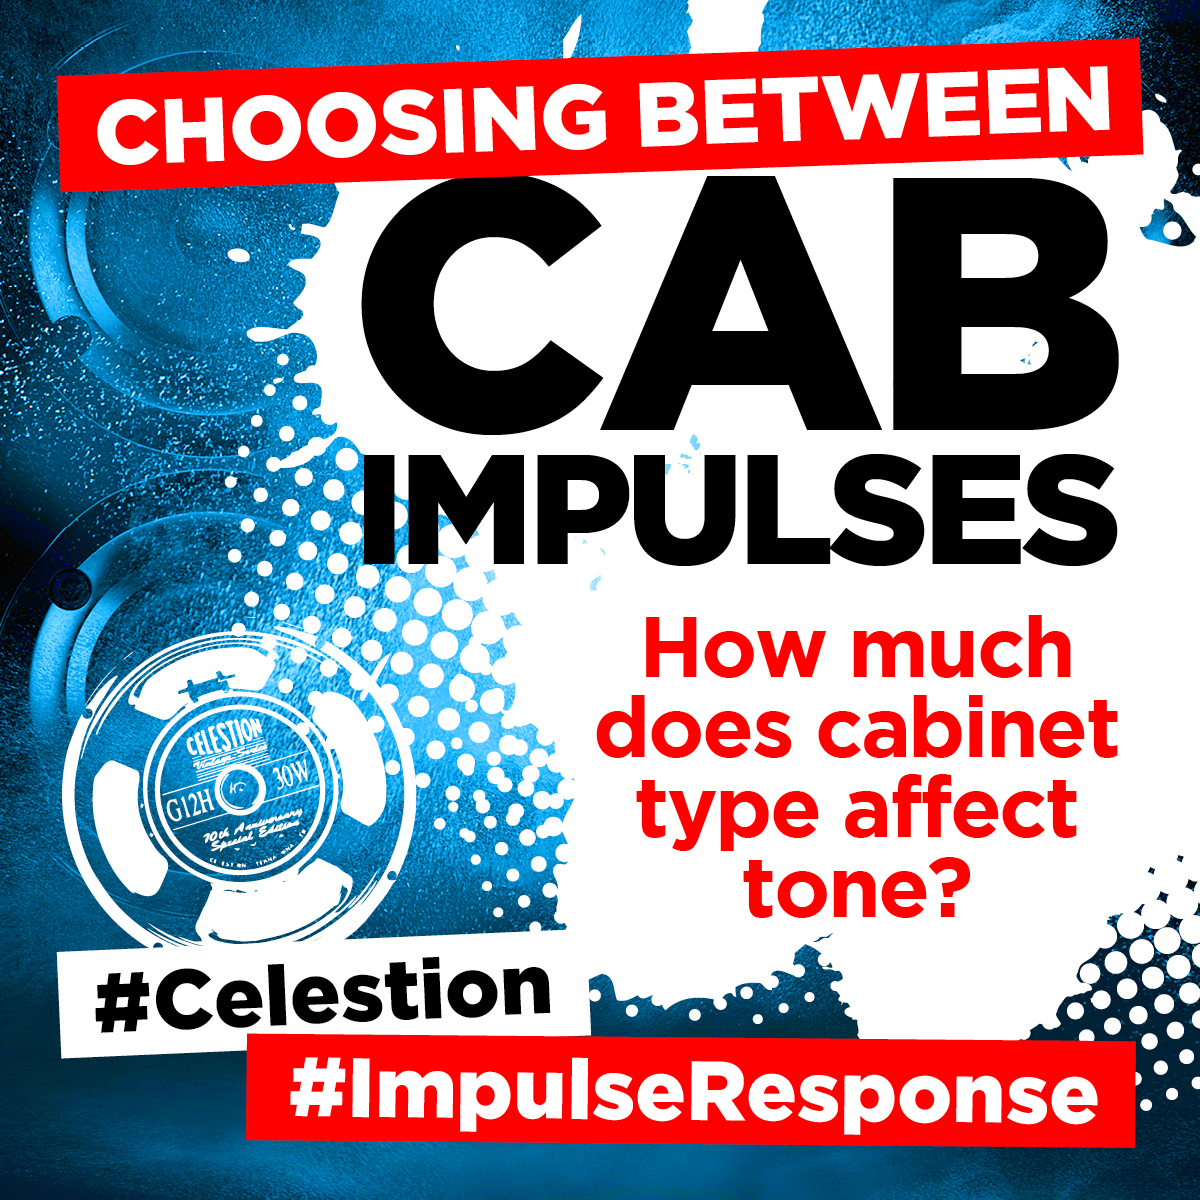 Celestion guitar cabinets, impulse responses